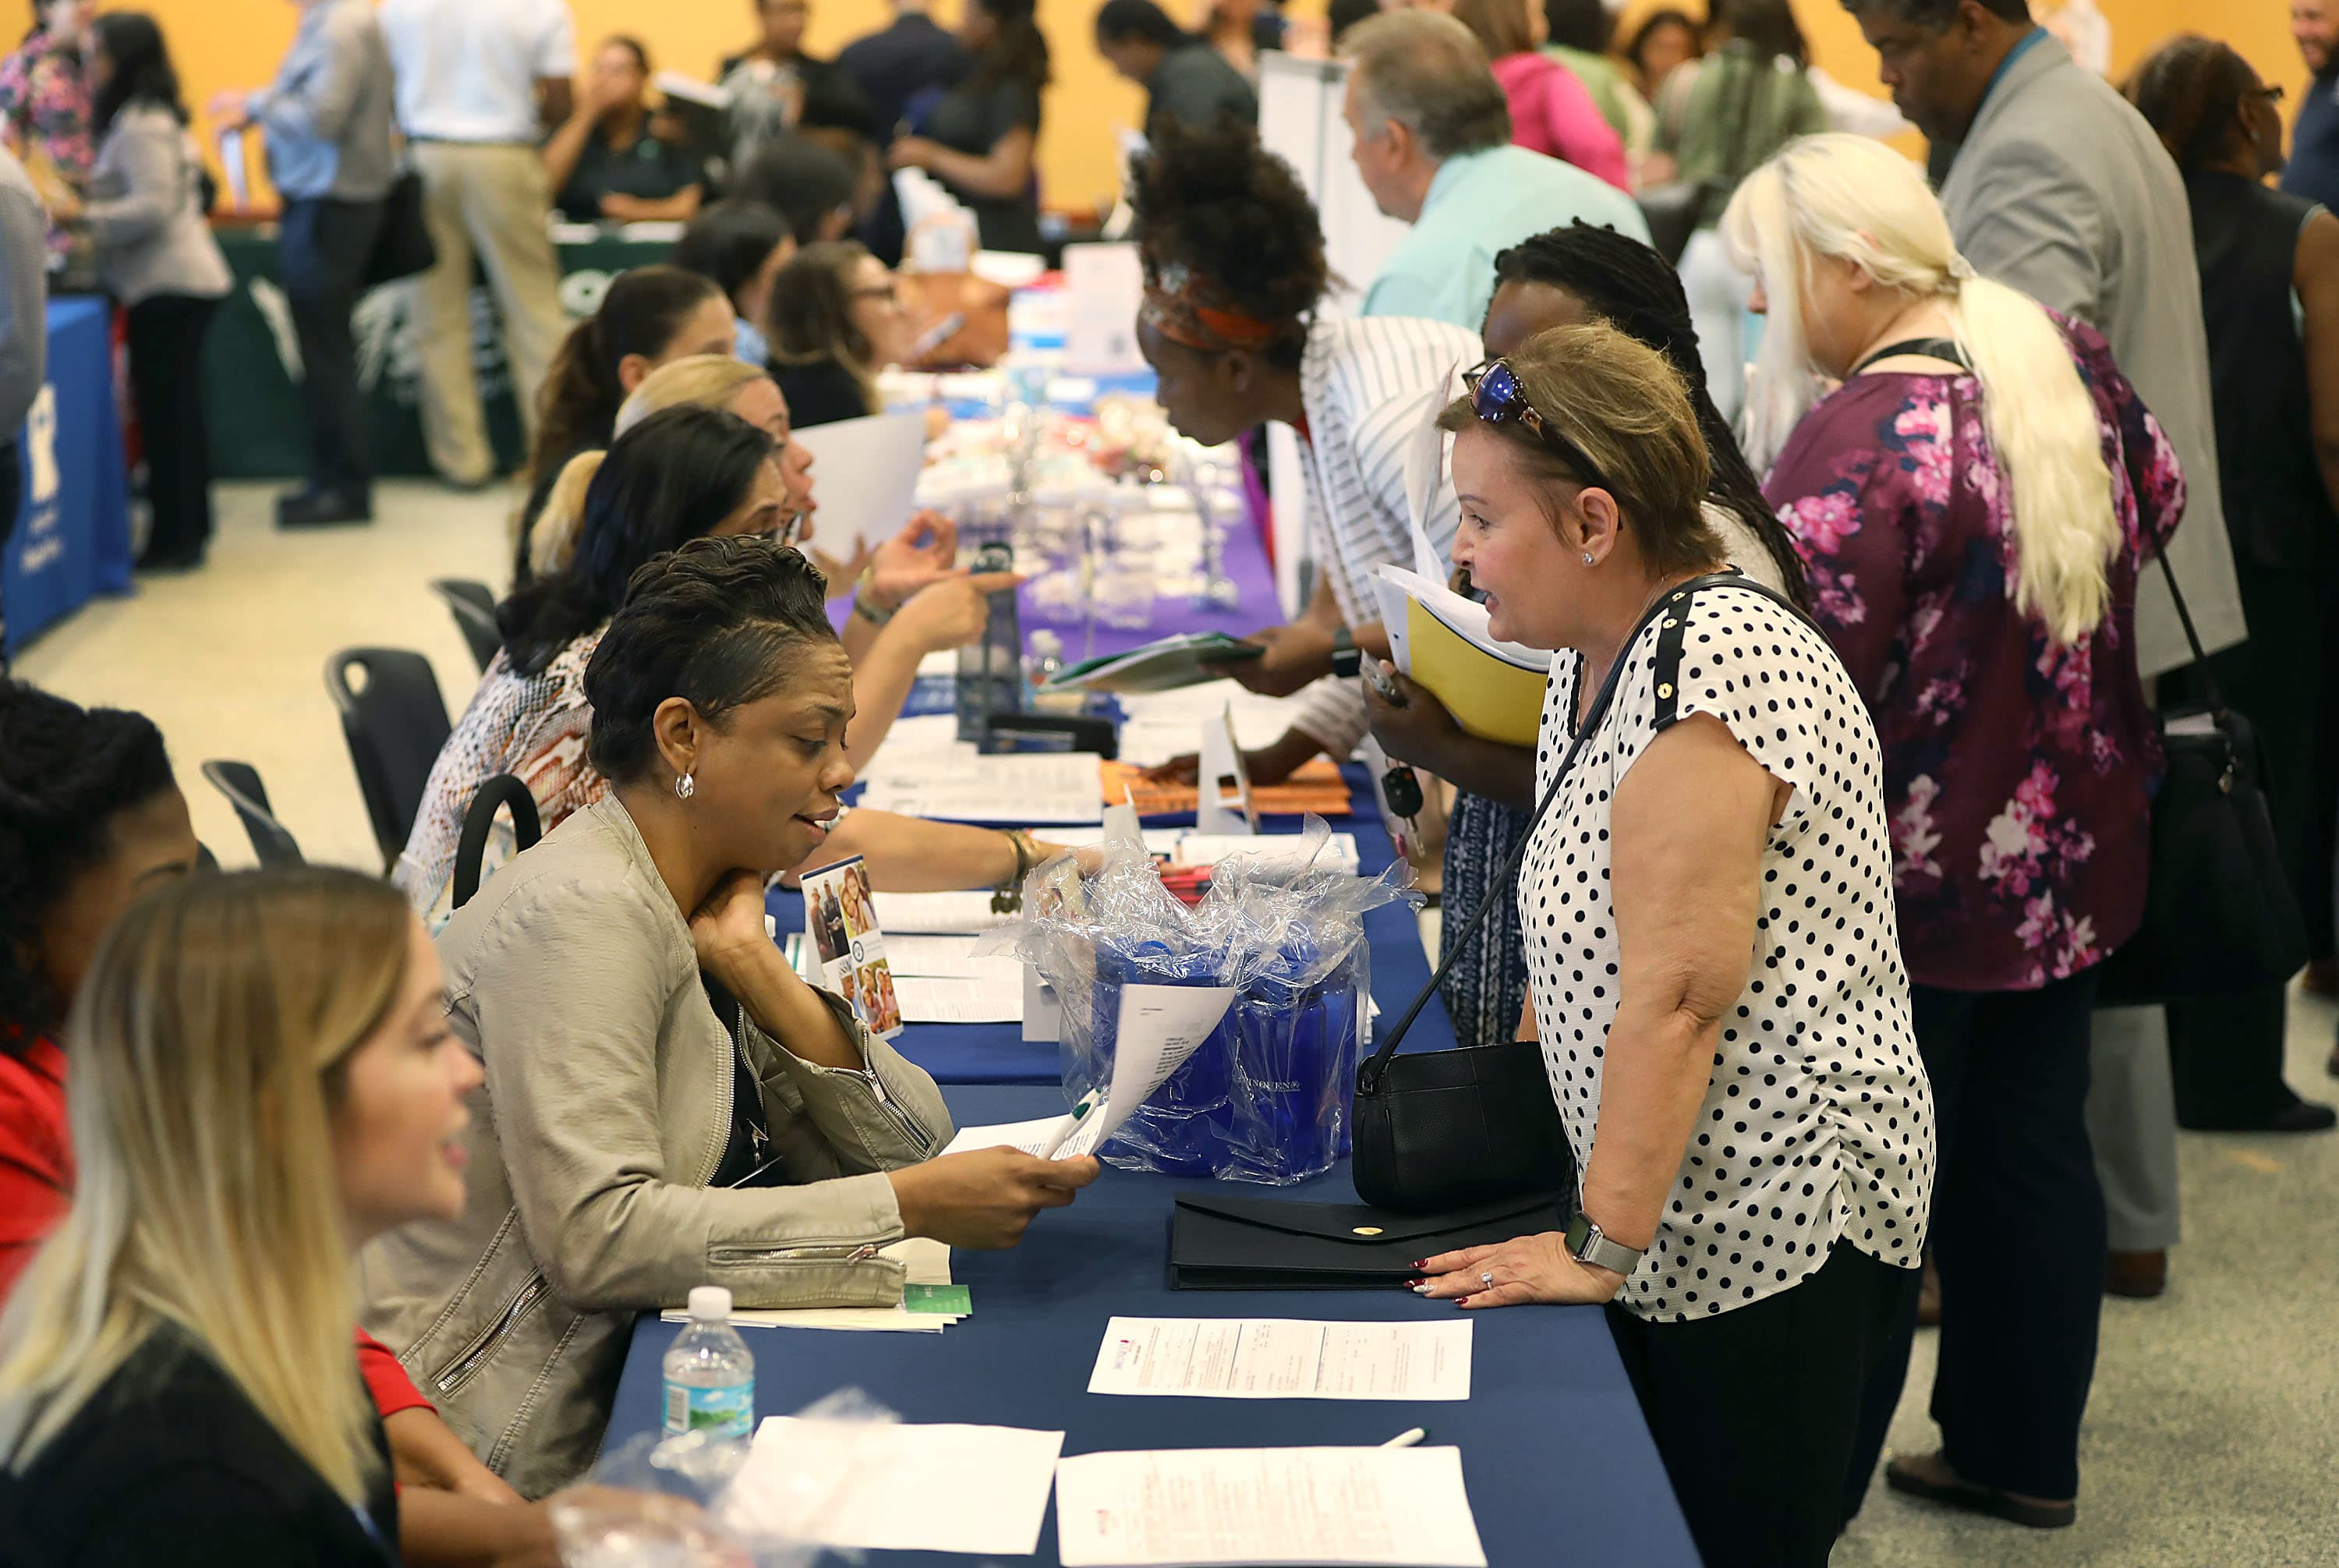 US weekly jobless claims fall to 3-month low